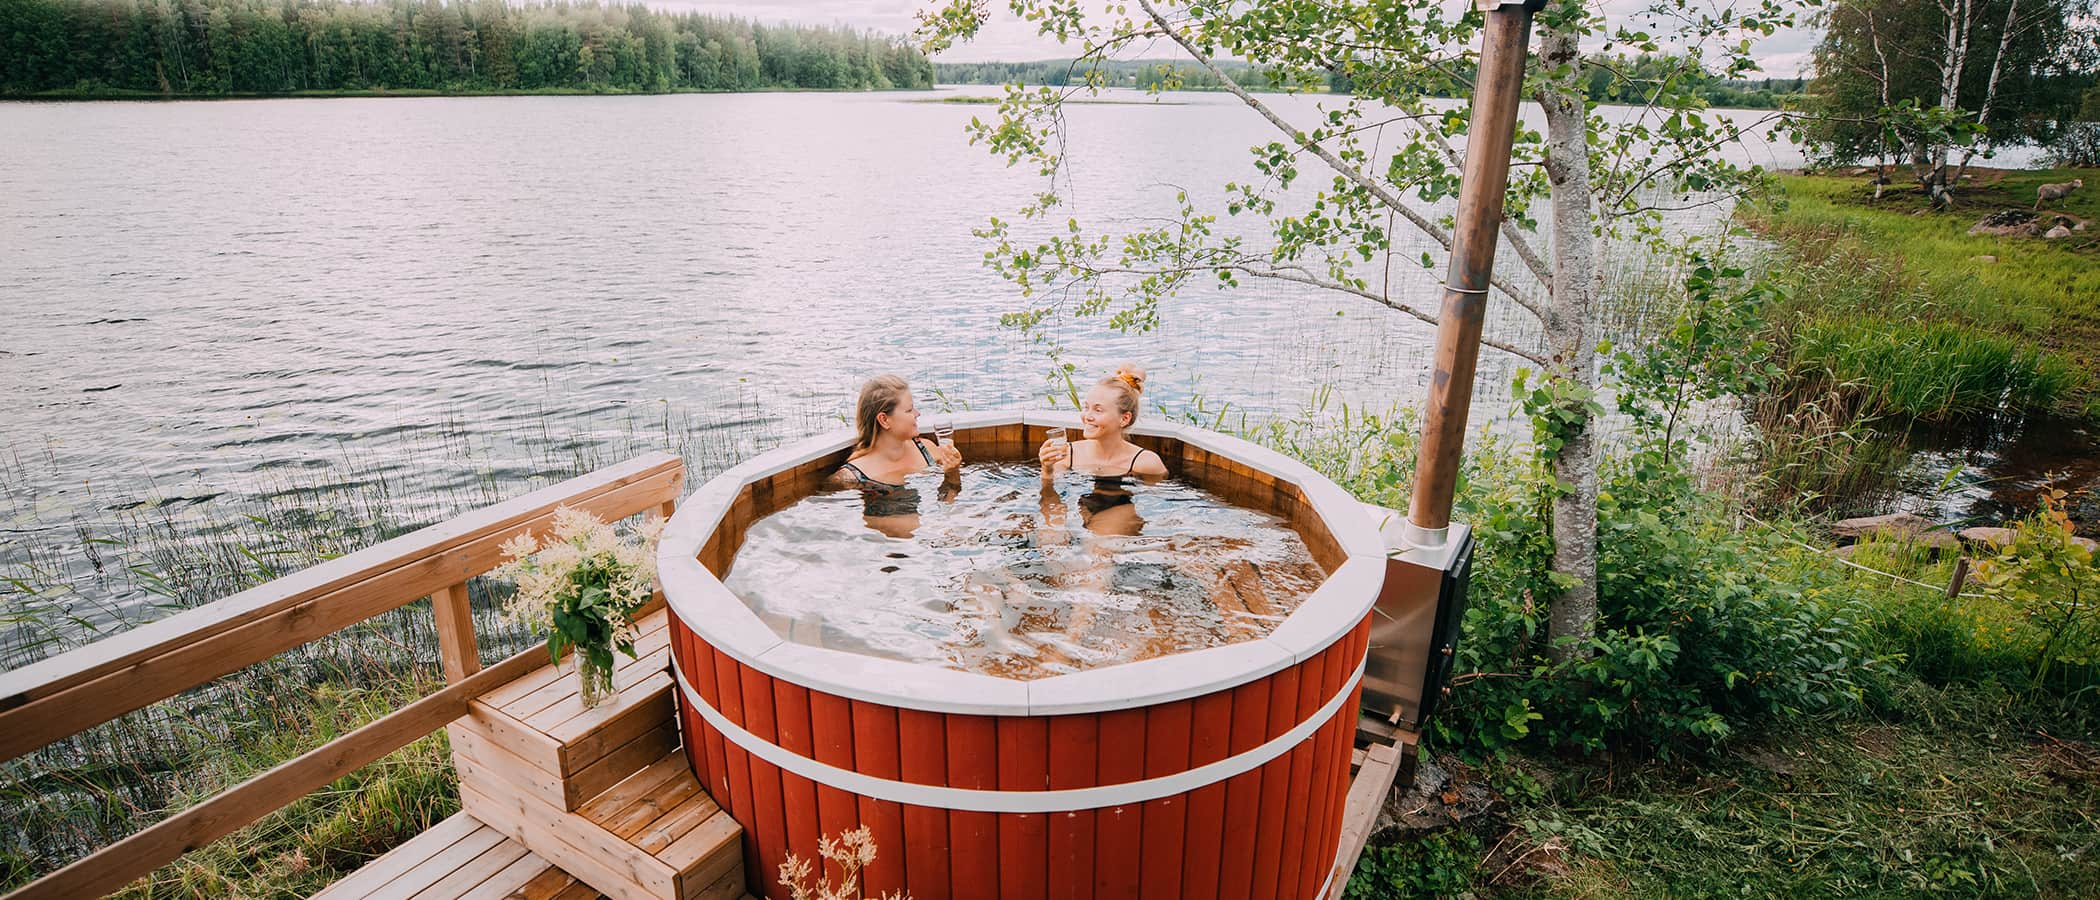 Two persons sitting in a hot tub